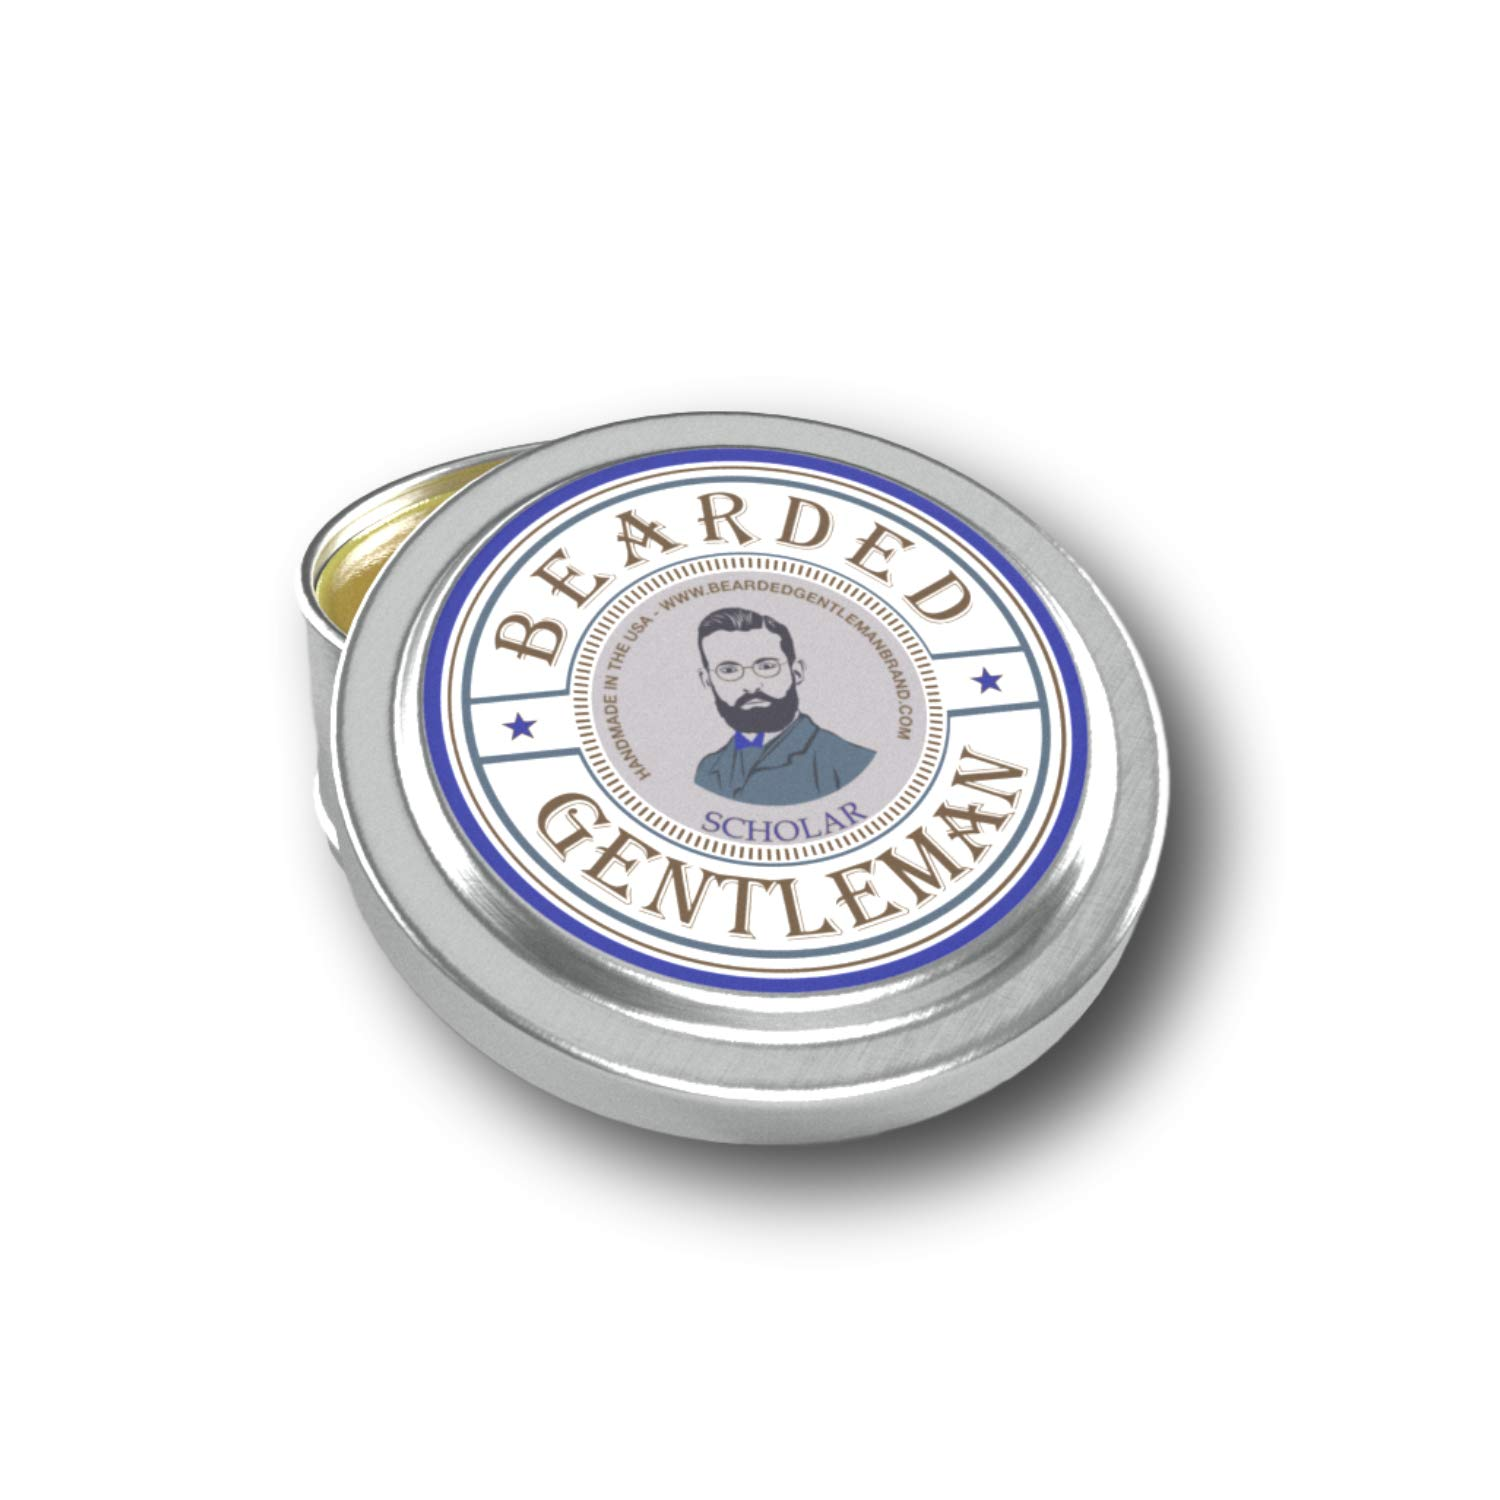 Bearded Gentleman Scholar Men's Solid Cologne - Vanilla Tobacco - 1 oz - Natural Ingredients in a Travel Sized Pocket Tin - Best Smelling Scent and Fragrance - Perfect Gift - Handmade in the USA